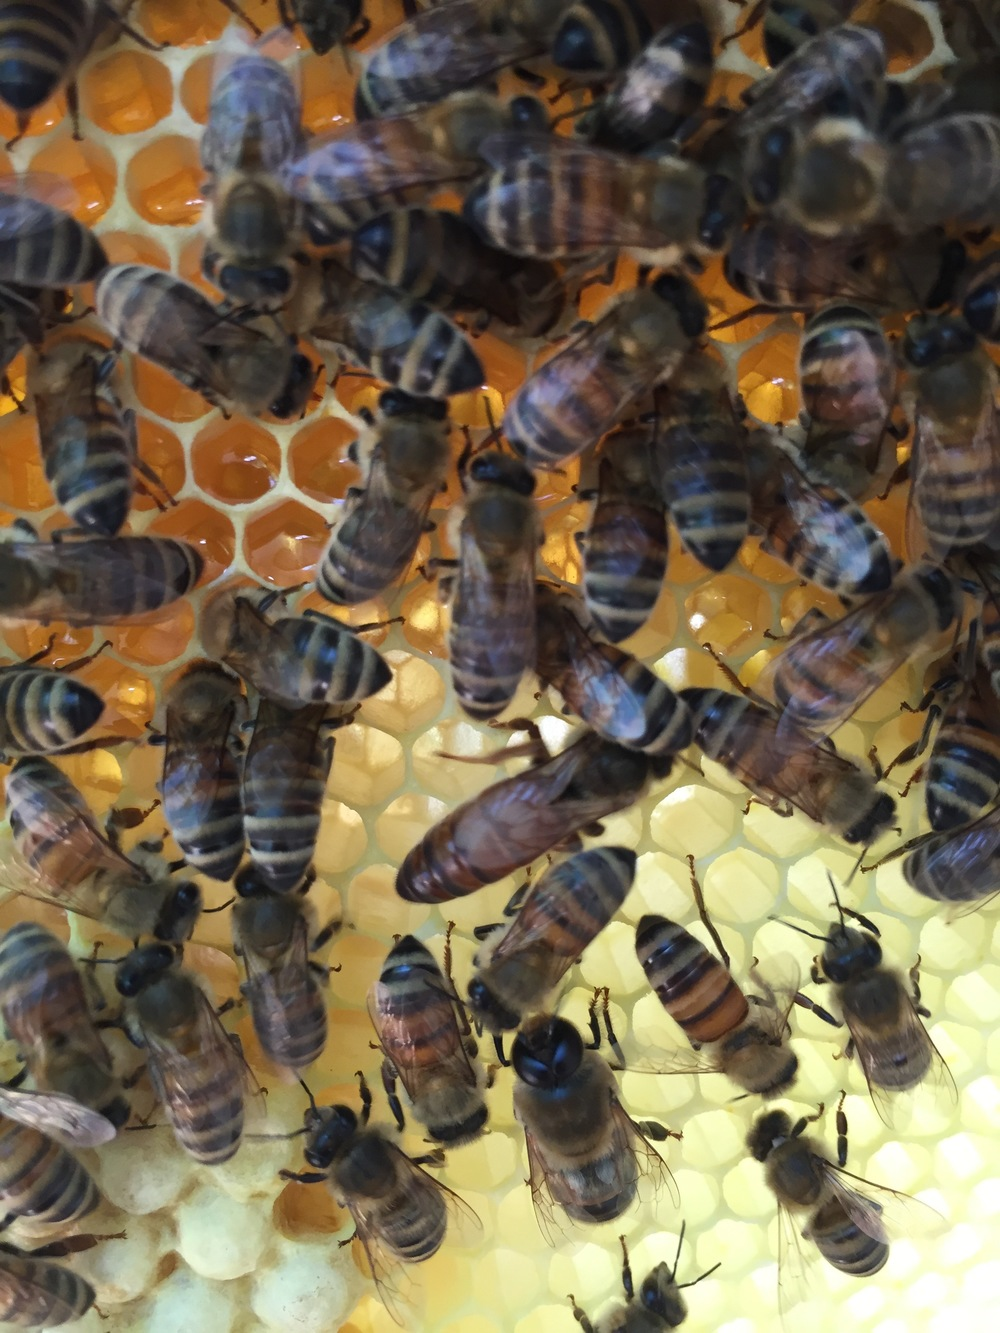 Queen in the middle, laying drone eggs